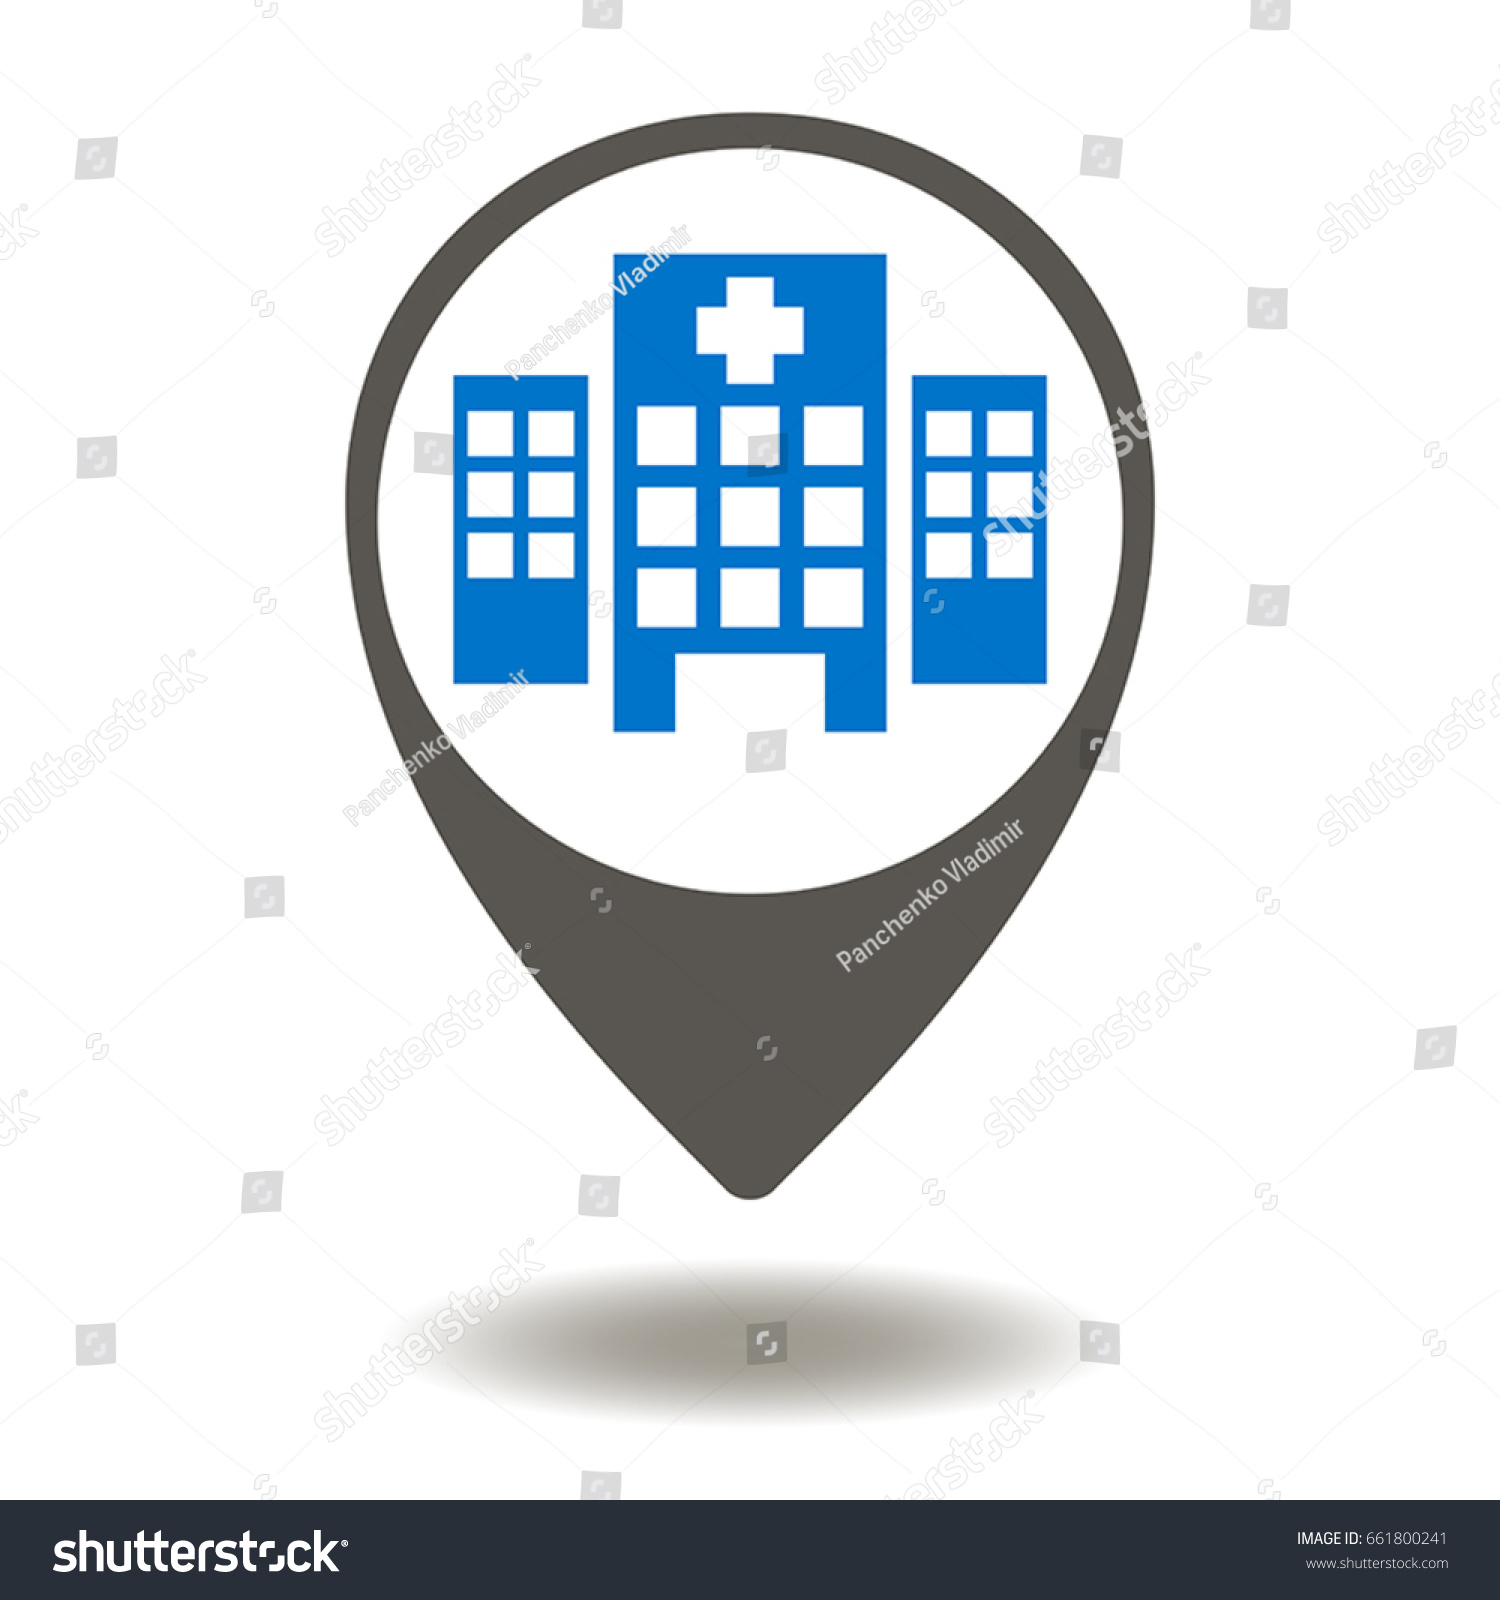 Hospital place vector icon medical clinic stock vector 661800241 hospital place vector icon medical clinic location illustration navigation medicine support help biocorpaavc